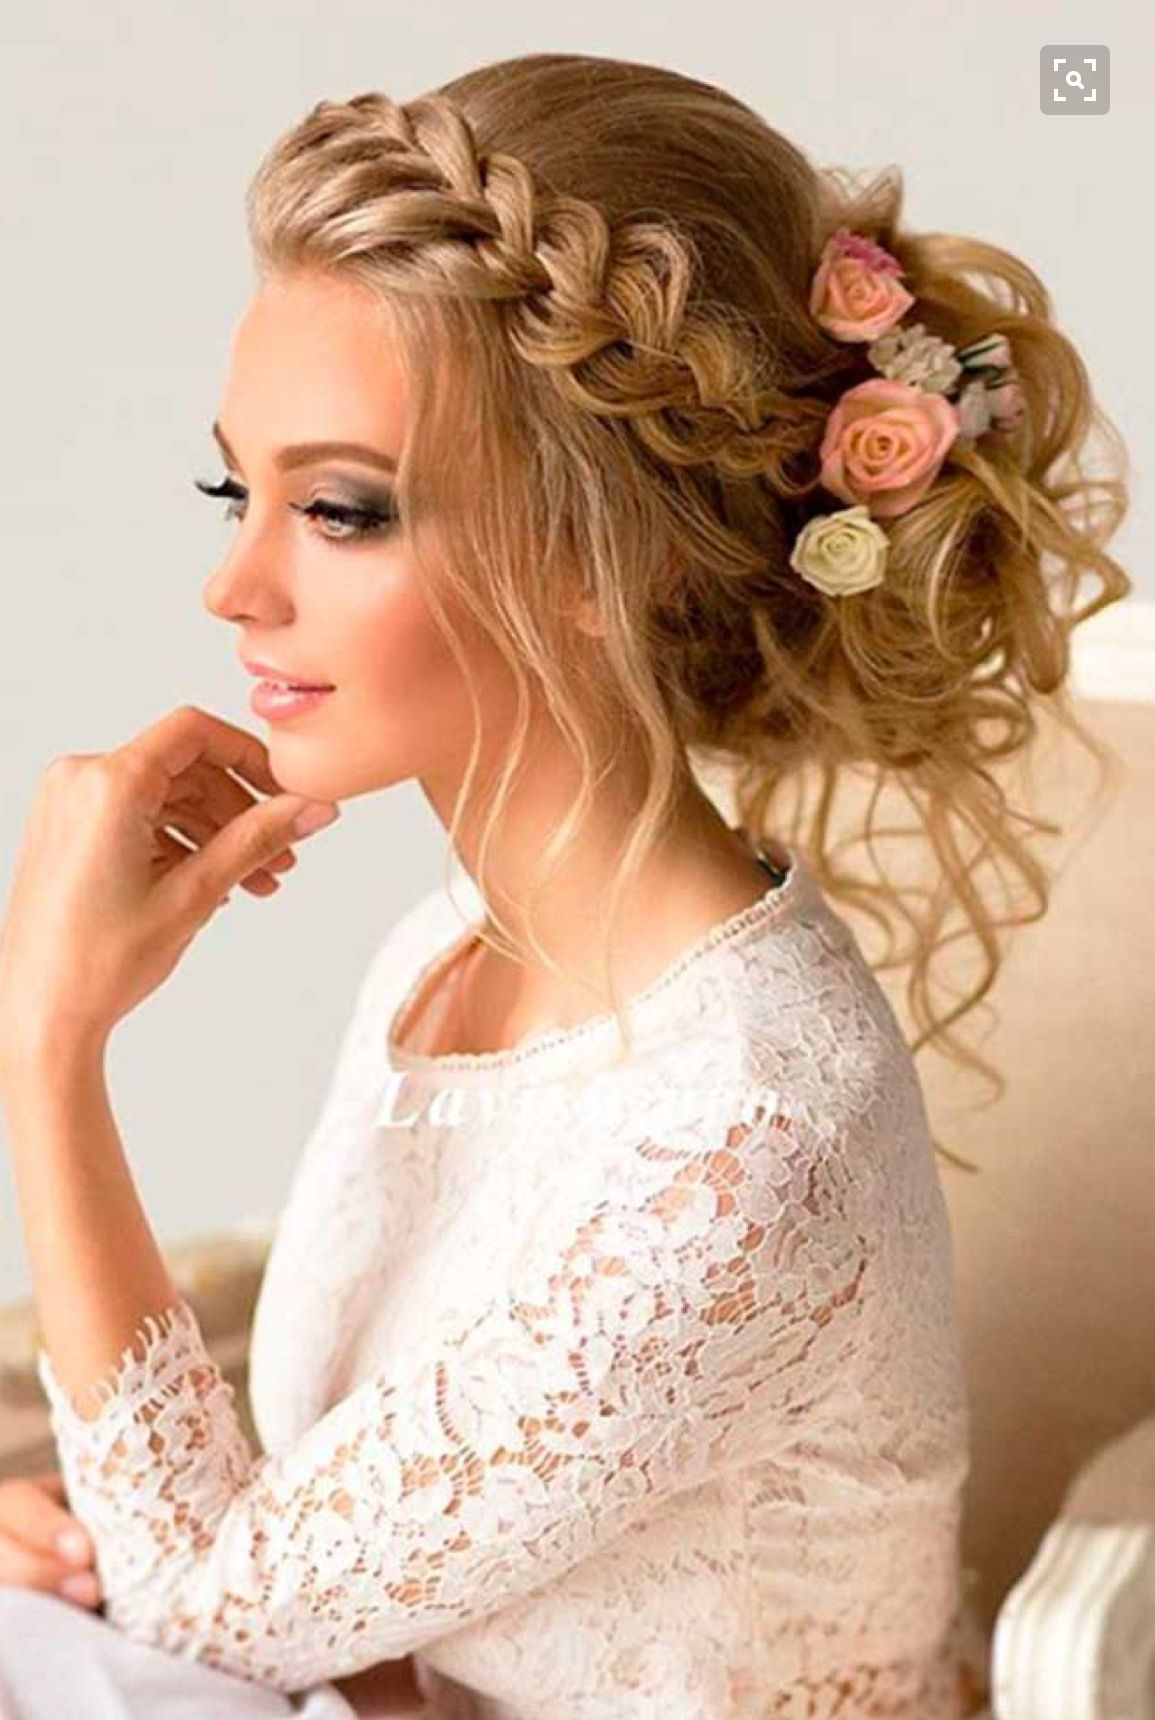 Pin by brittany hawk on hair pinterest hair style wedding and